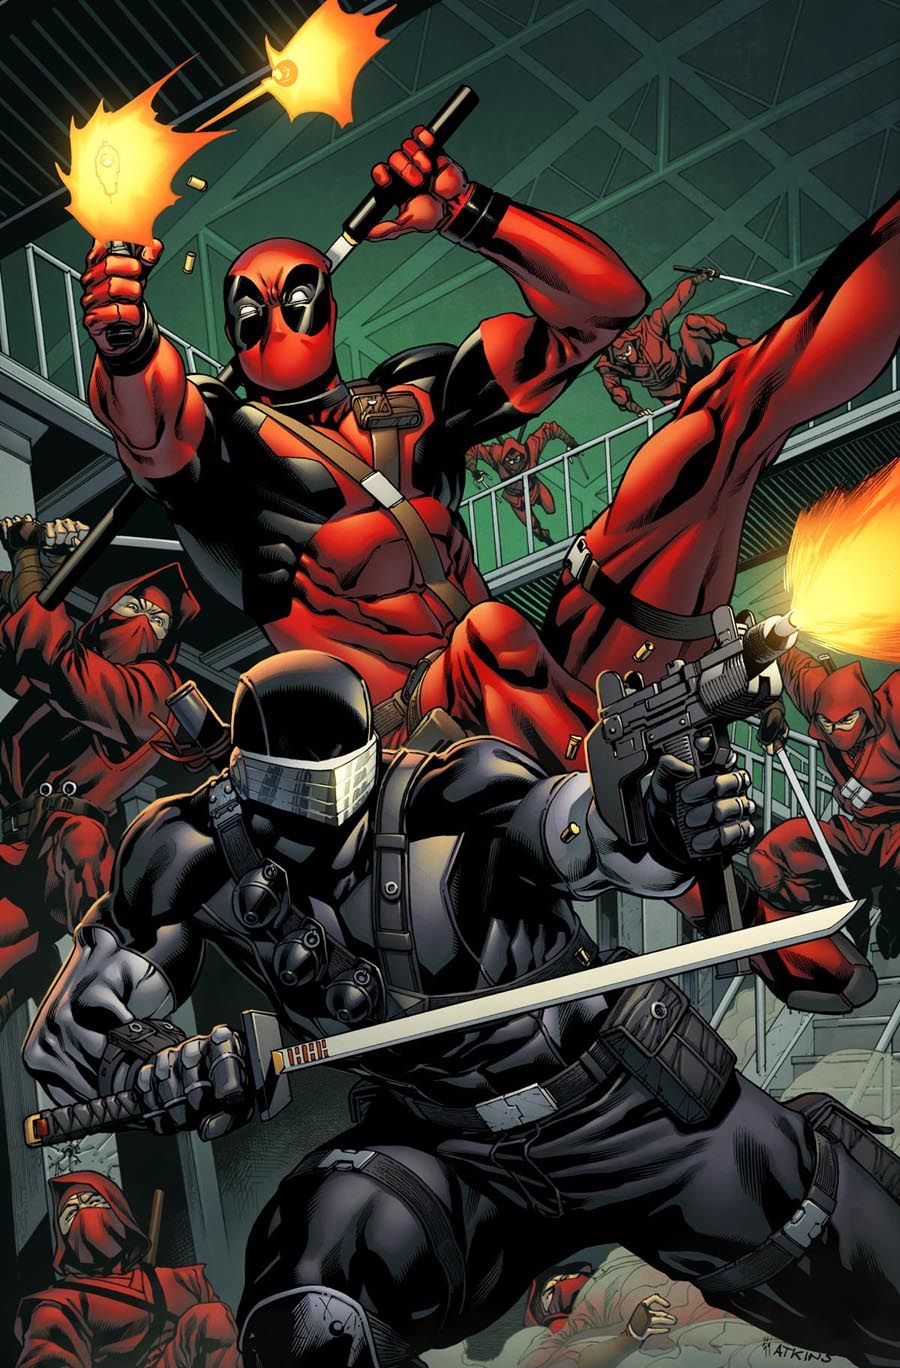 #Deadpool #Fan #Art. (Snake Eyes vs Deadpool) By: Spidermanfan2099. (THE * 5 * STÅR * ÅWARD * OF: * AW YEAH, IT'S MAJOR ÅWESOMENESS!!!™)[THANK Ü 4 PINNING!!!<·><]<©>ÅÅÅ+(OB4E)